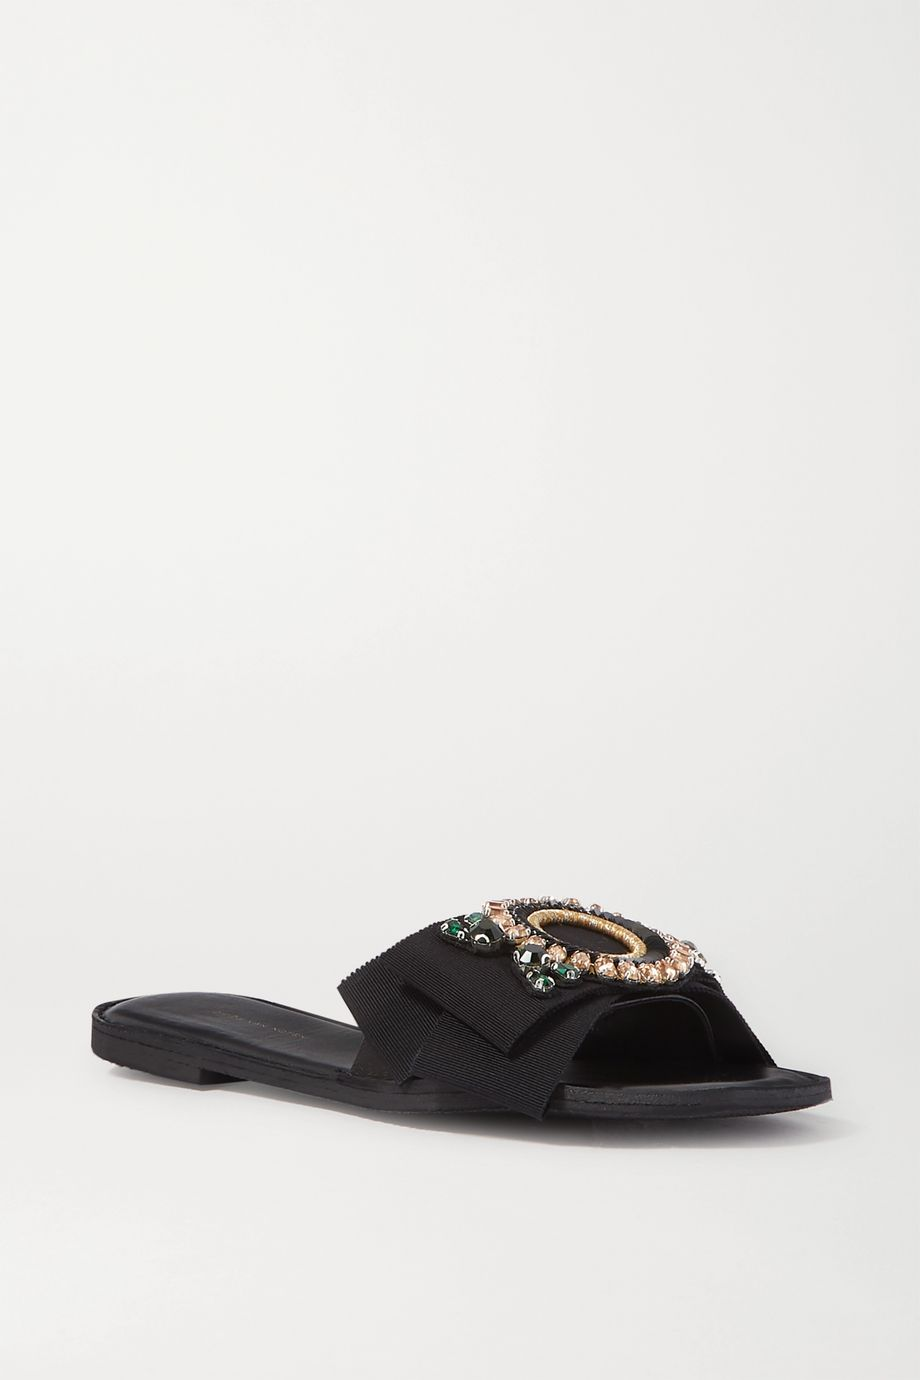 Dries Van Noten Embellished grosgrain and leather slides